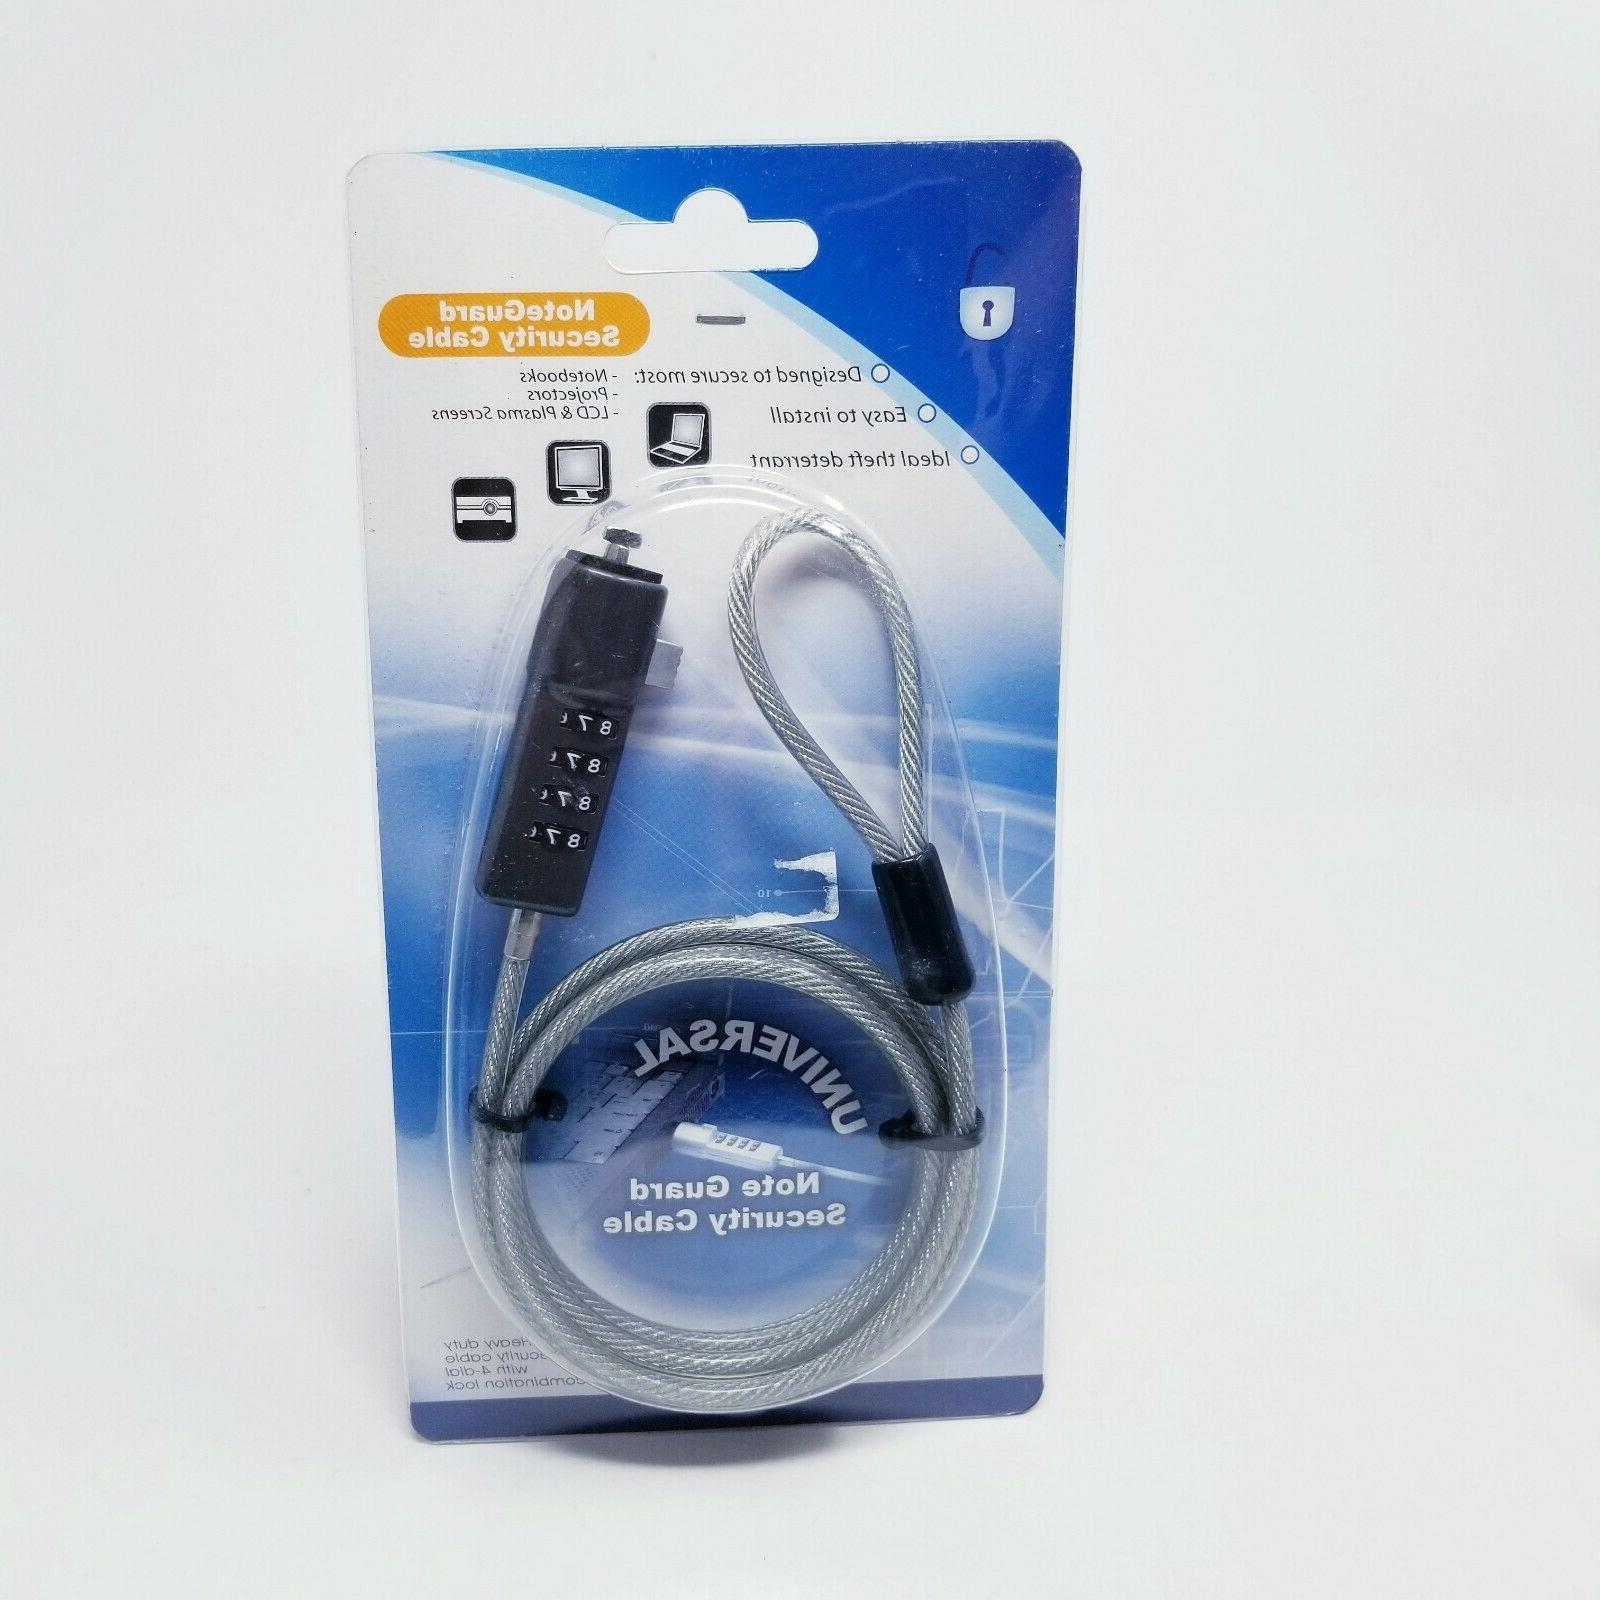 Note Guard Universal Security Cable For NOTEBOOKS, PROJECTOR